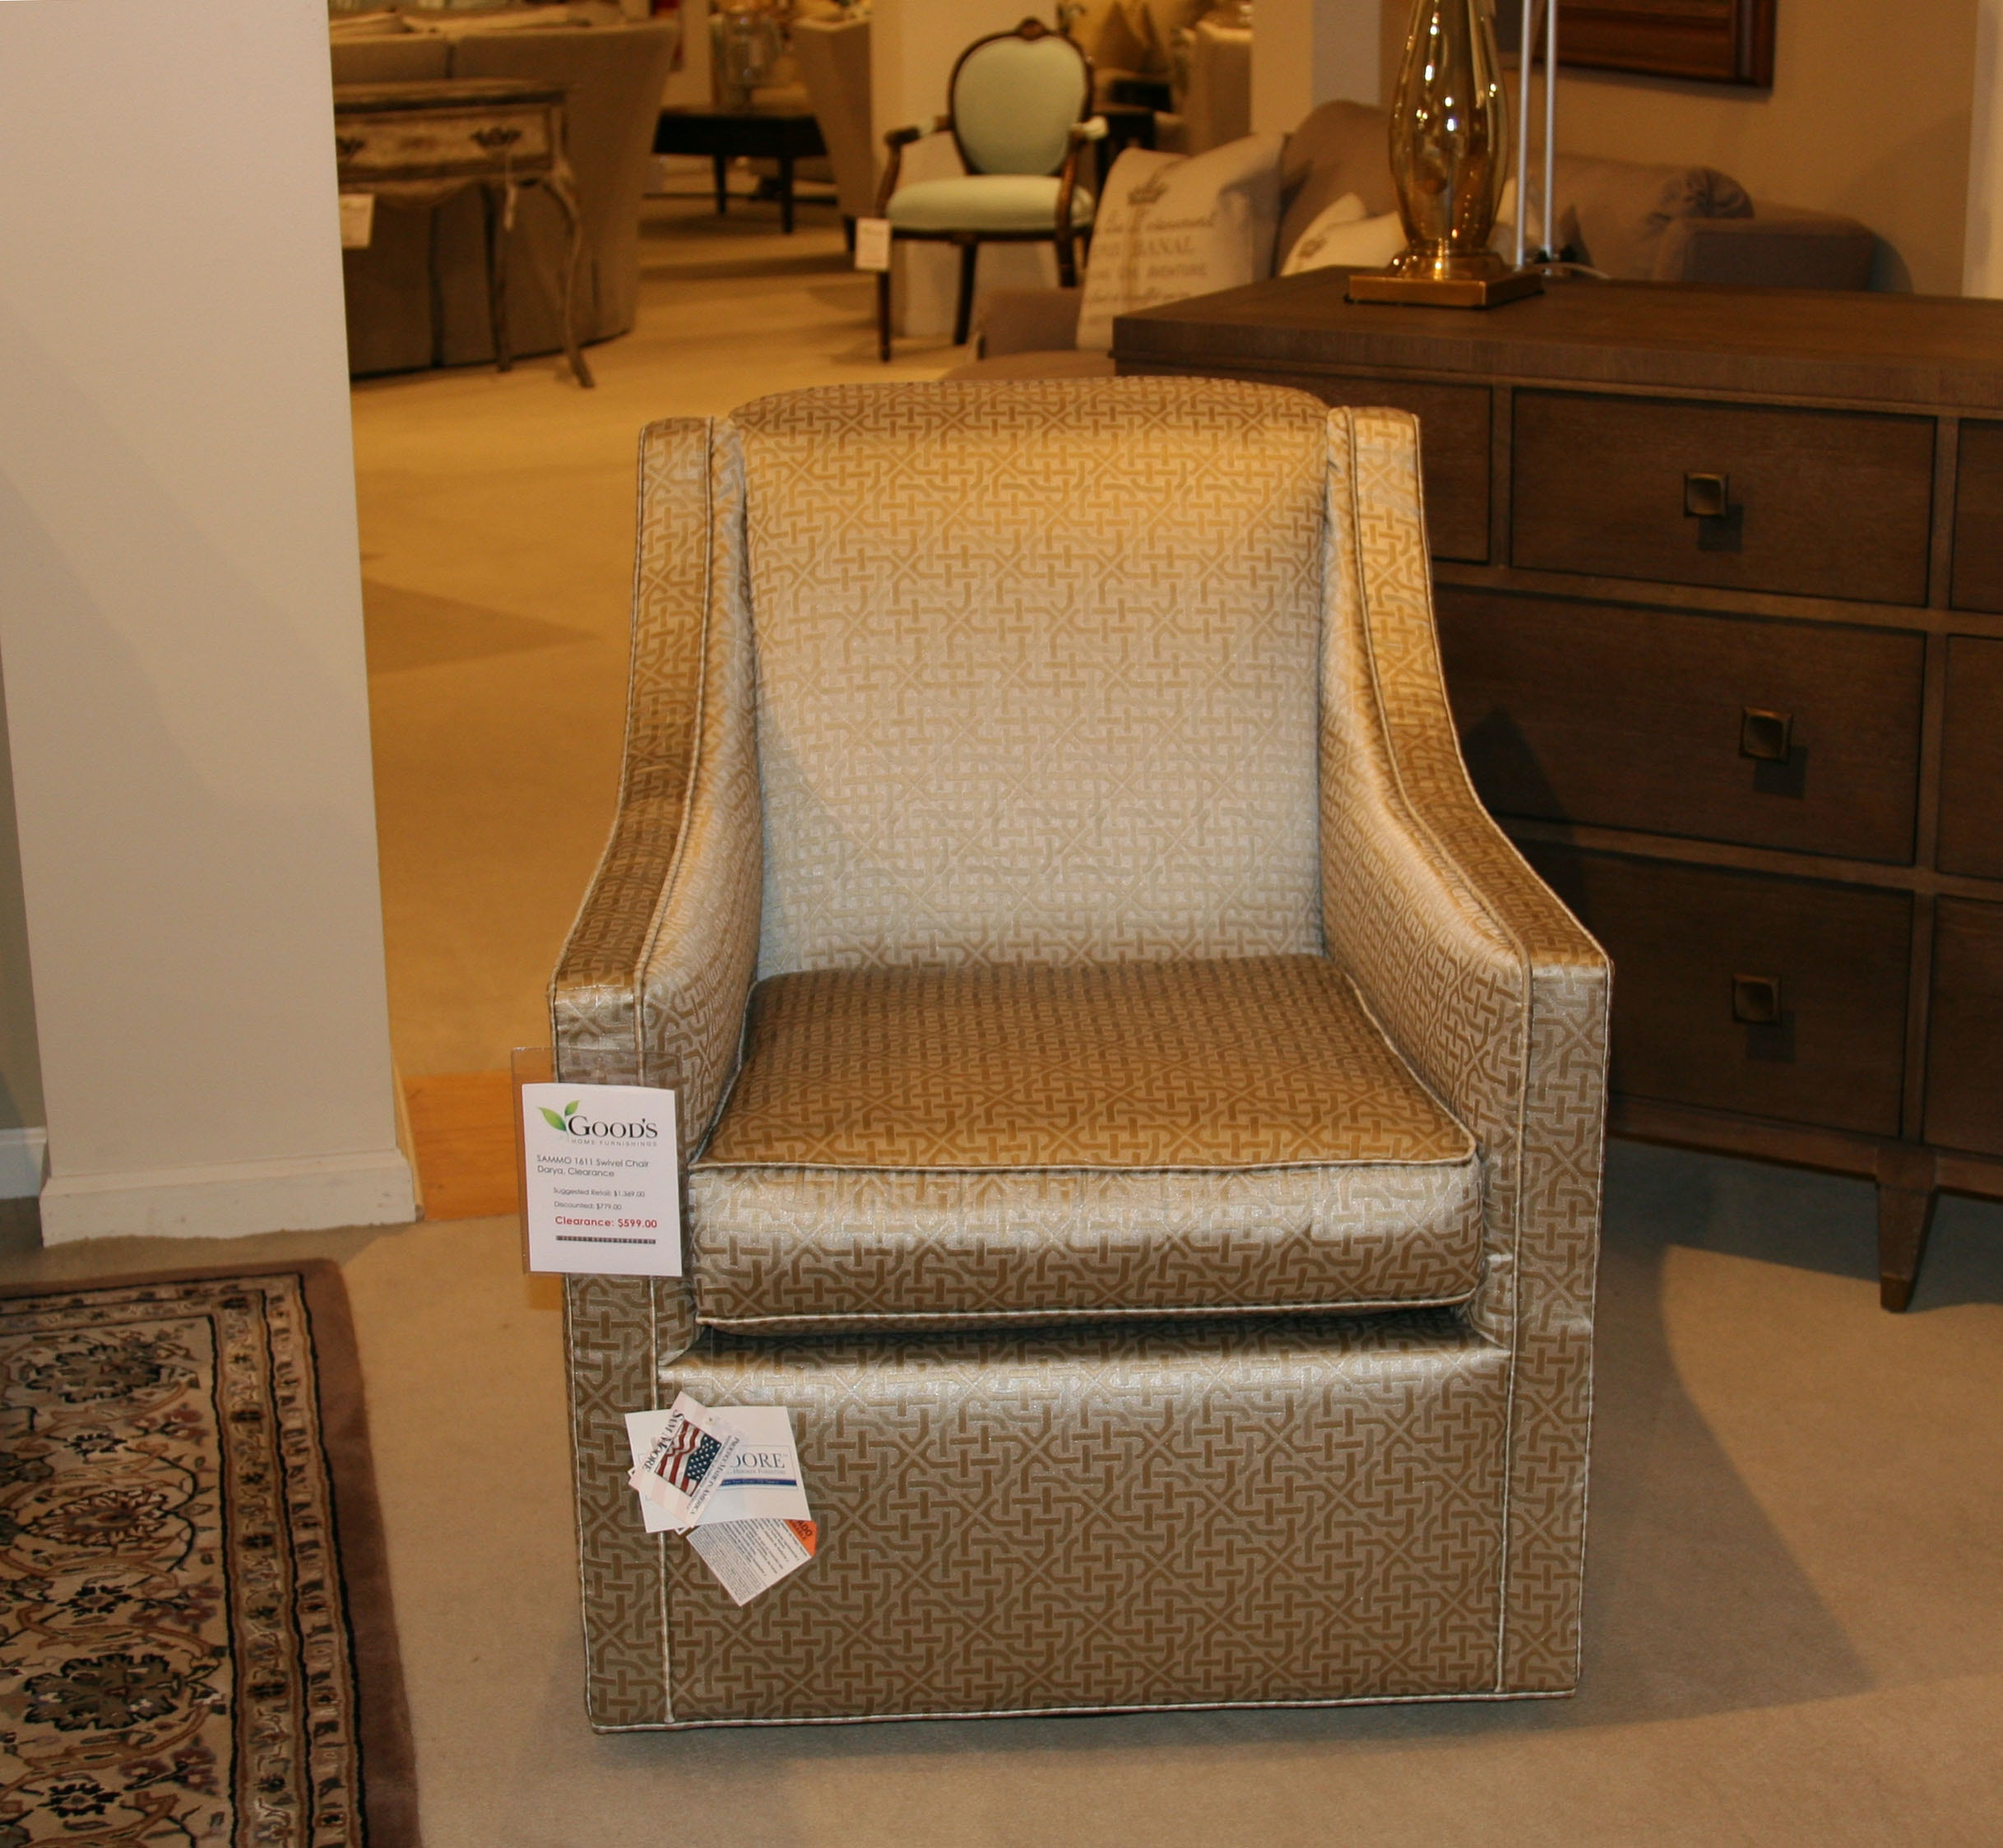 zara swivel chair glider rocking replacement cushions uk sam moore furniture 1611 clearance living room darya